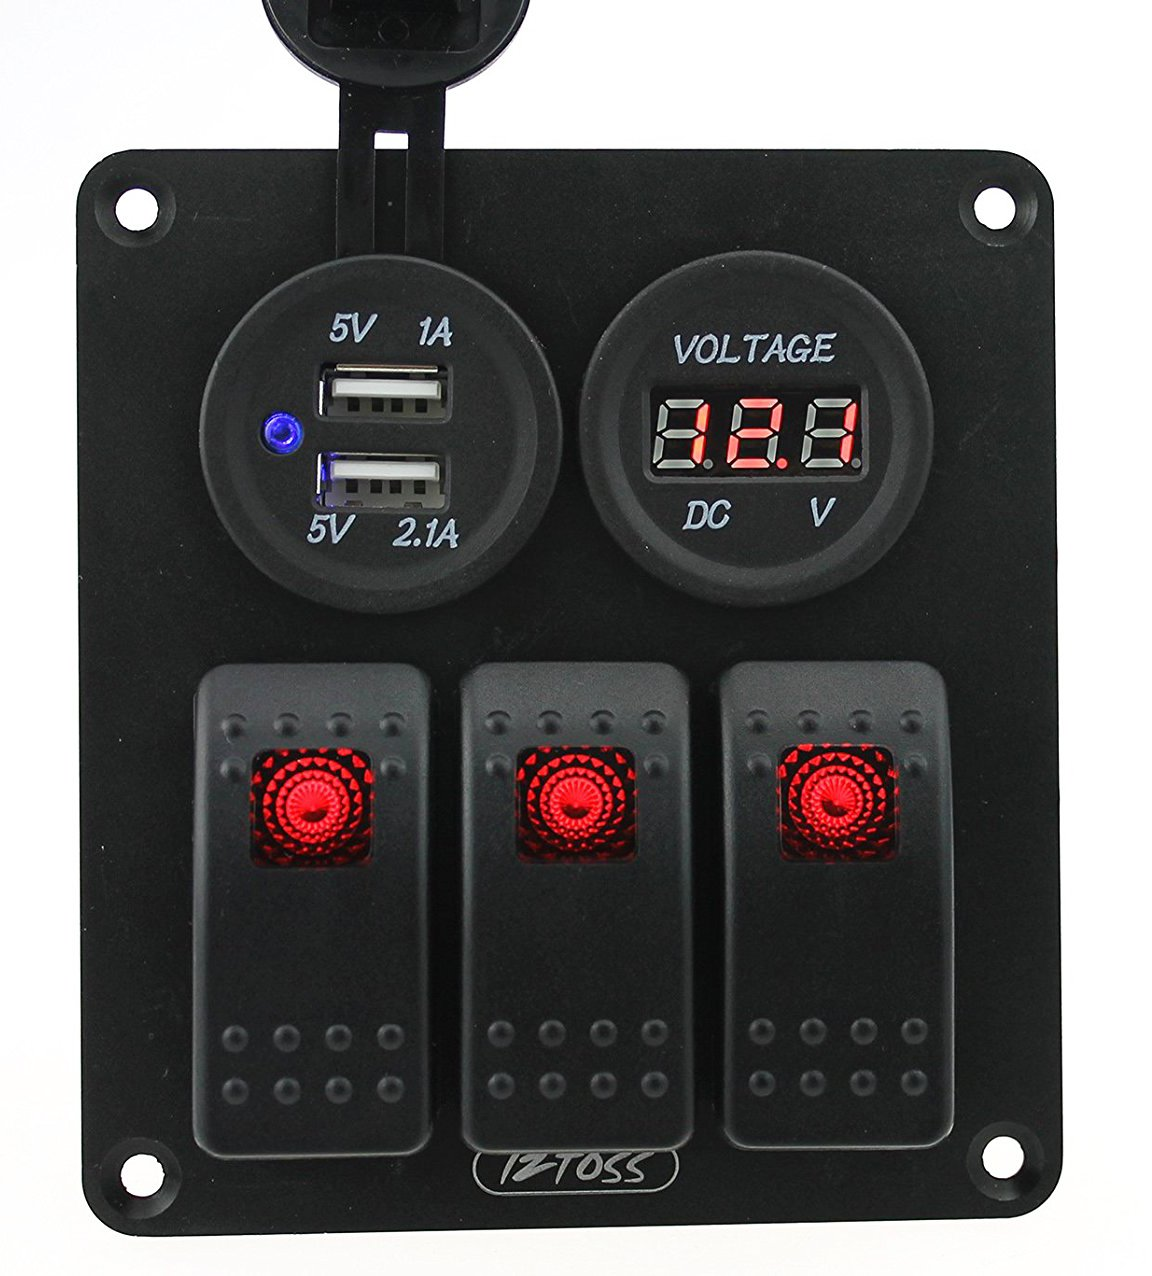 Iztoss 3 gang rocker switch panel with DC12V/24V voltmeter 3.1A(2.1A+1A) dual USB wiring kits and Decal Sticker Labels DC12V/24V for Marine Boat Car Rv Vehicles Truck Red led by IZTOSS